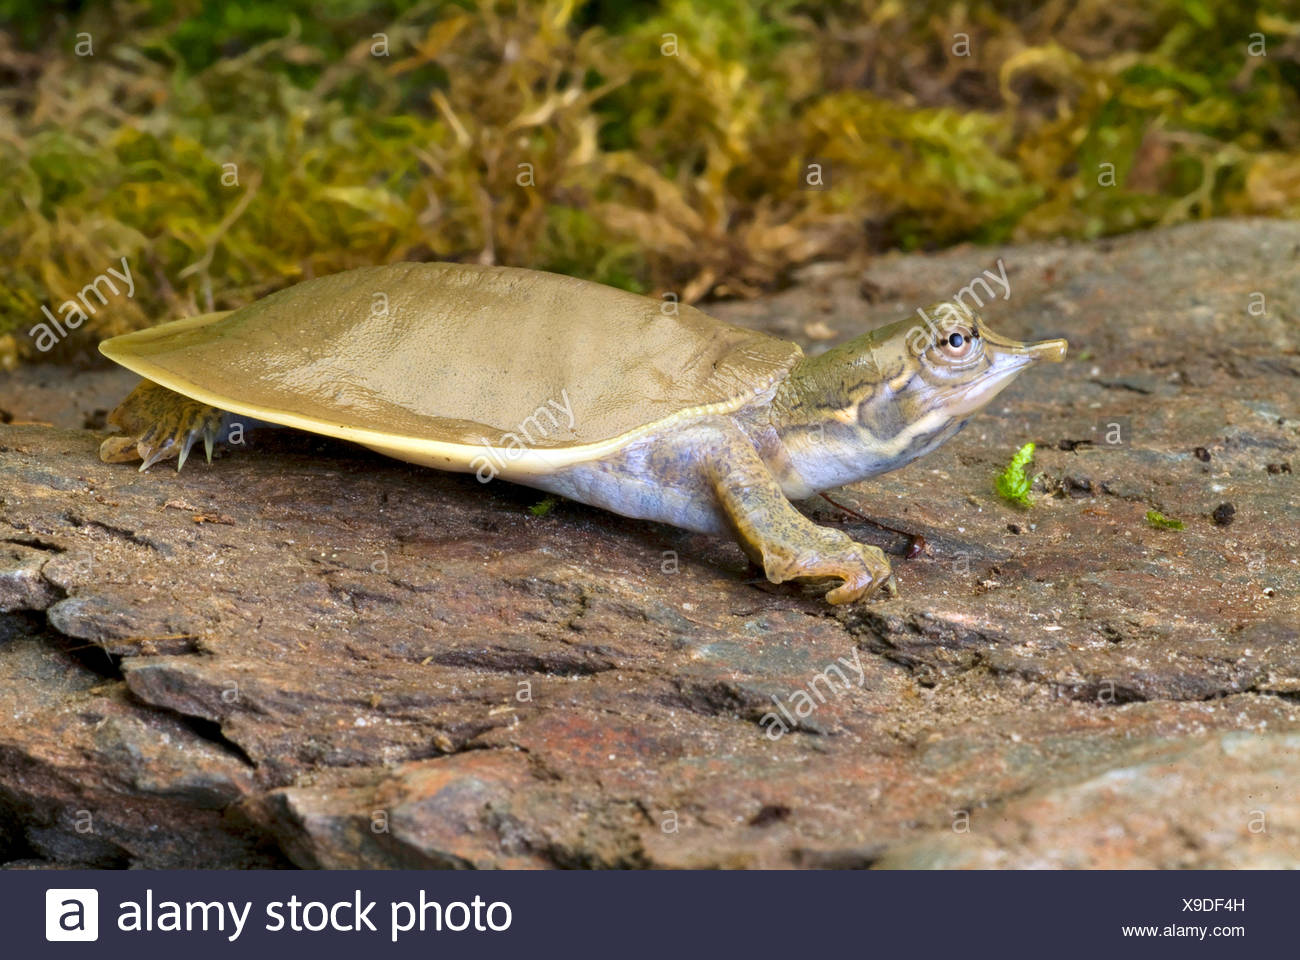 Spiny softshell turtles (Trionyx spiniferus, Apalone spinifera), side view - Stock Image